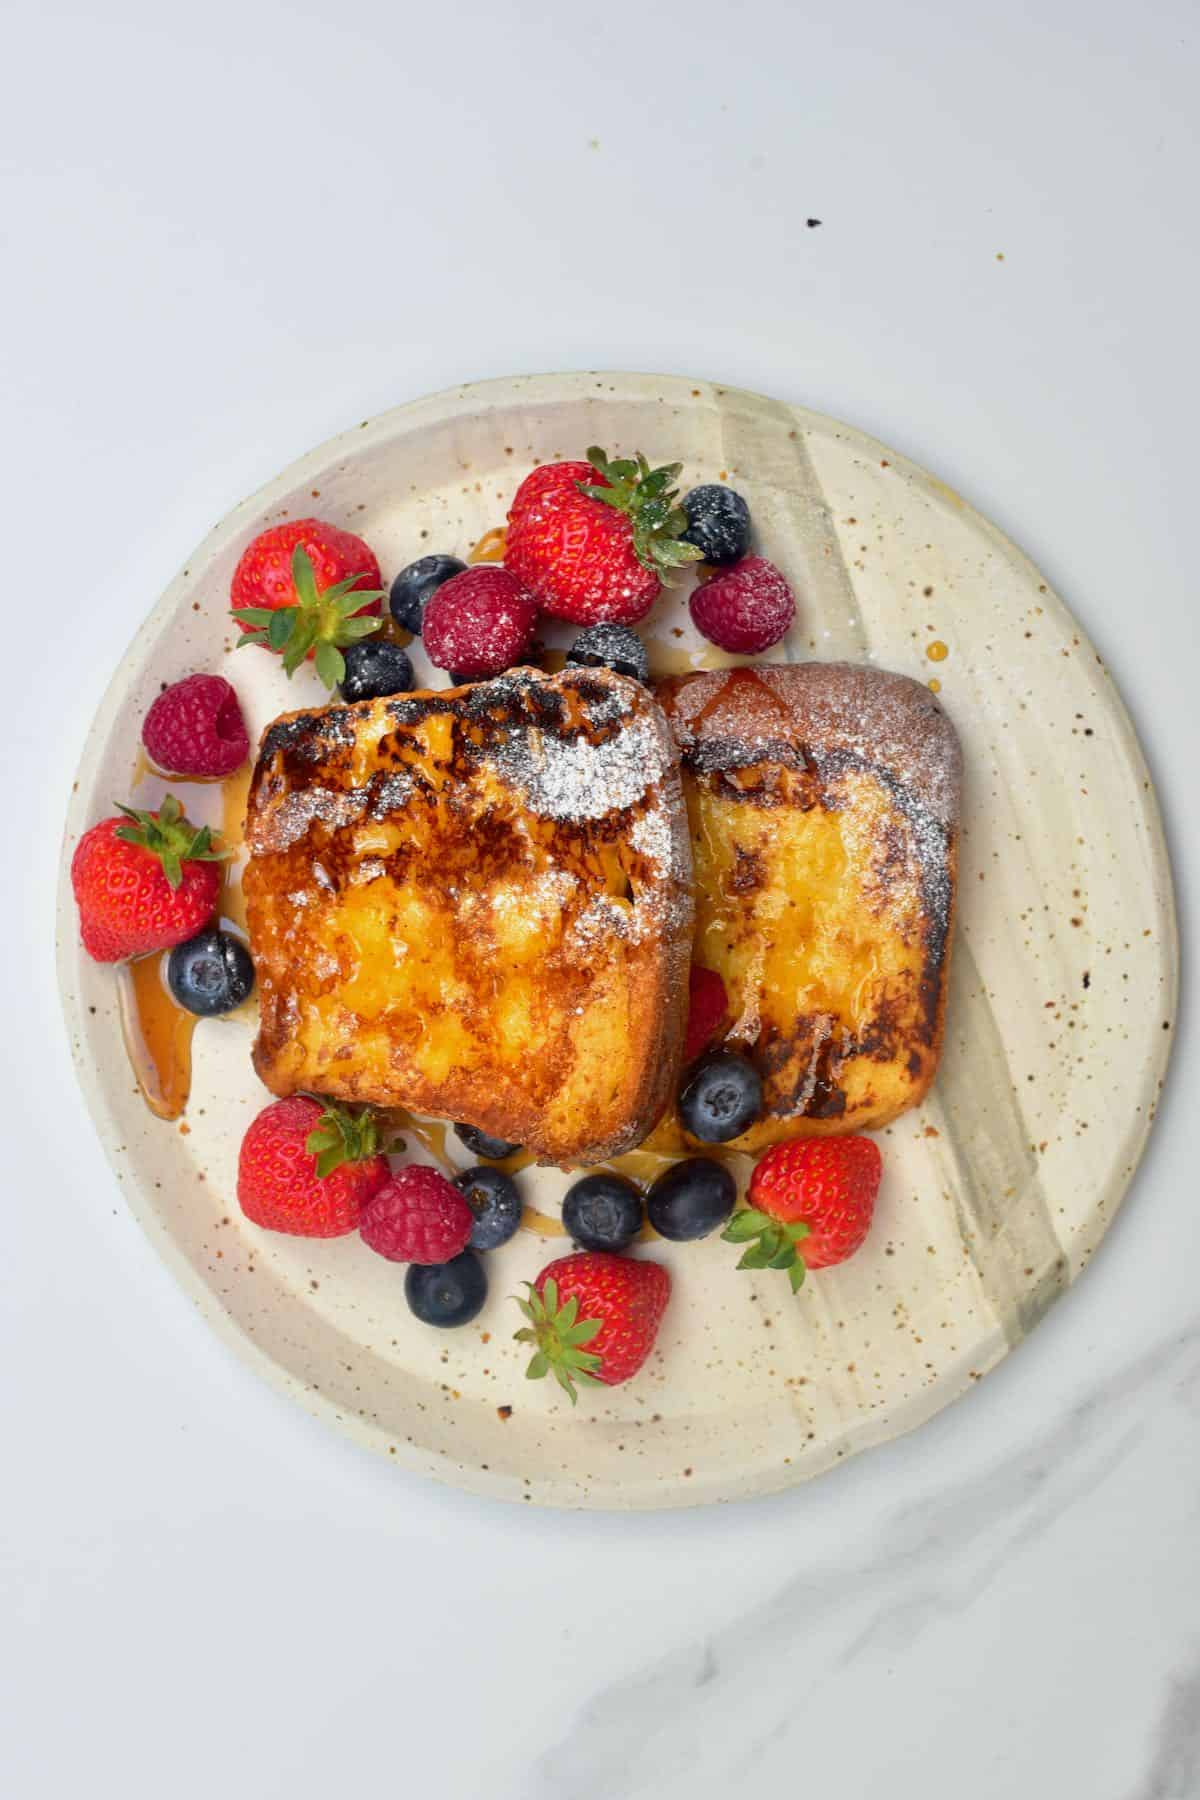 Homemade French toast with berries on a plate